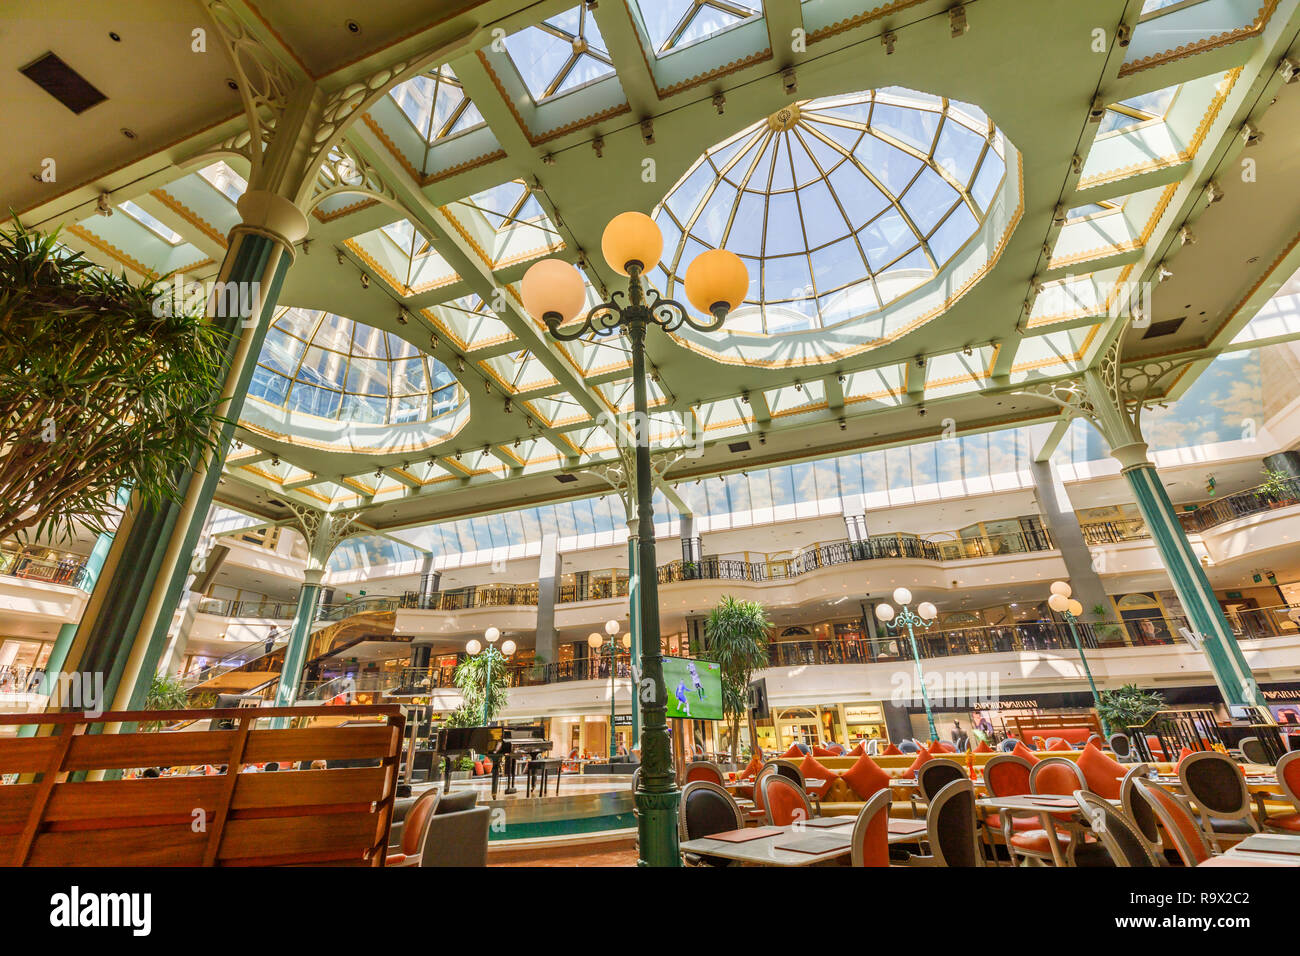 Interior of the modern light and airy First Mall, La Gourmandise, part of the luxurious Cairo At The First Residence Four Seasons Hotel, Cairo, Egypt Stock Photo